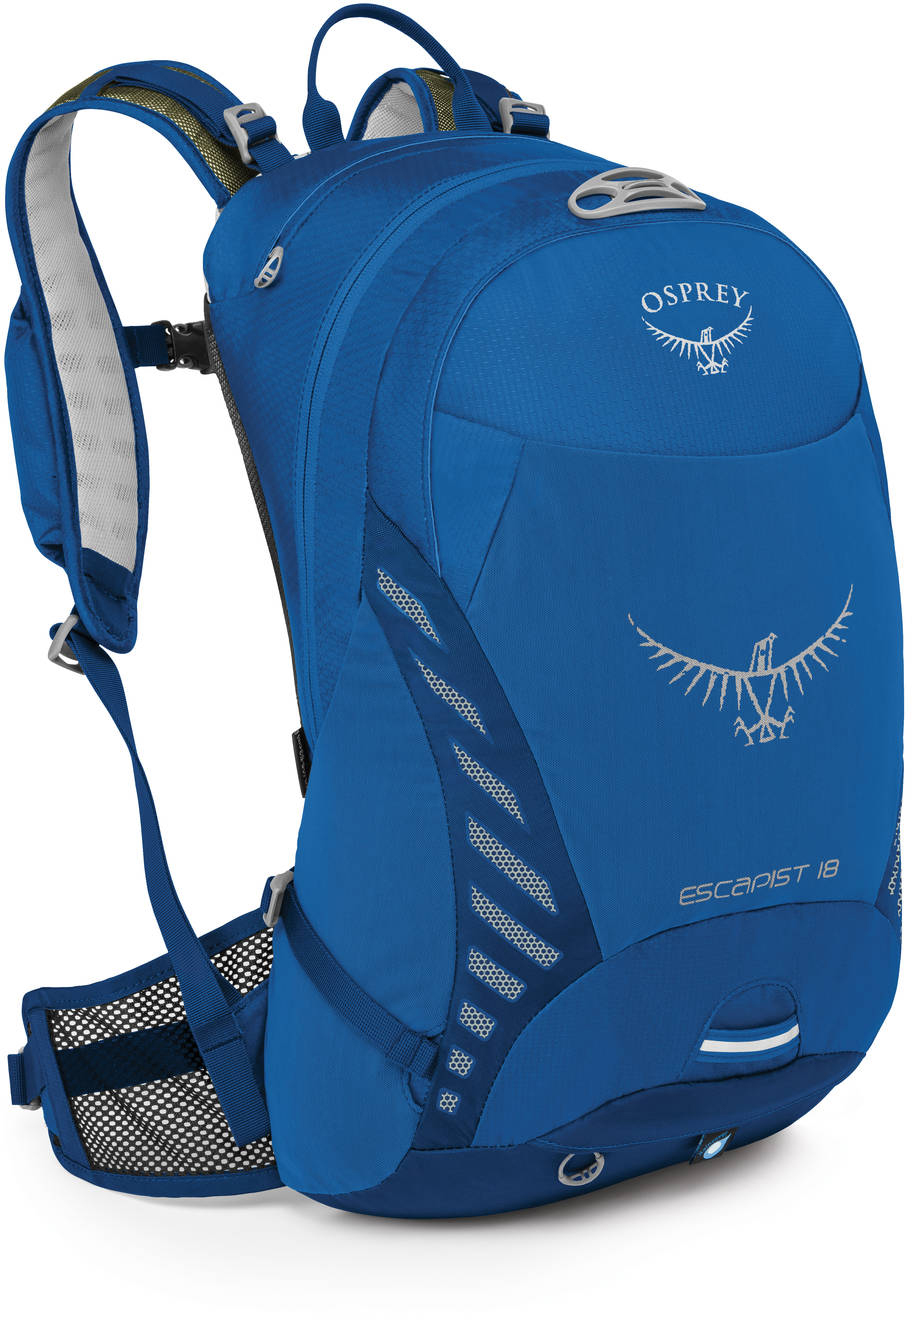 Osprey Escapist 18 Rygsæk | Travel bags